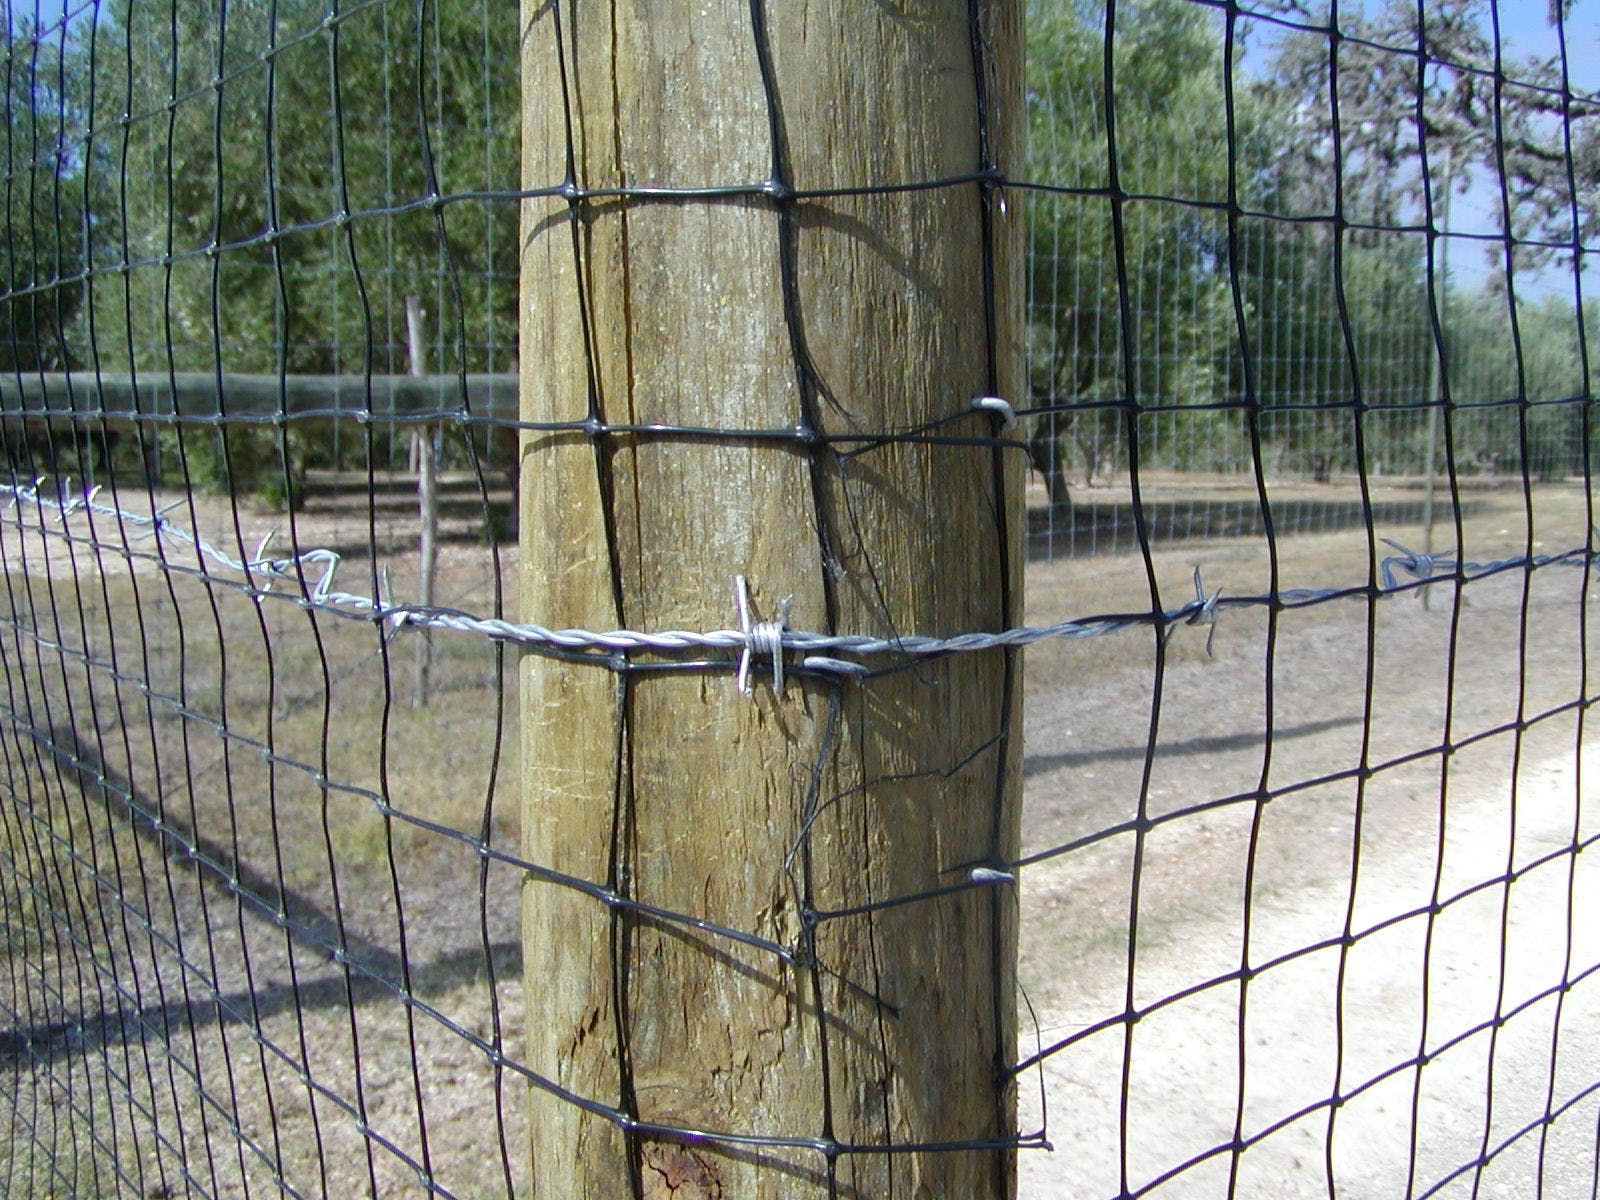 Black plastic deer or livestock fencing Fencing sold by Producer Supply Co.